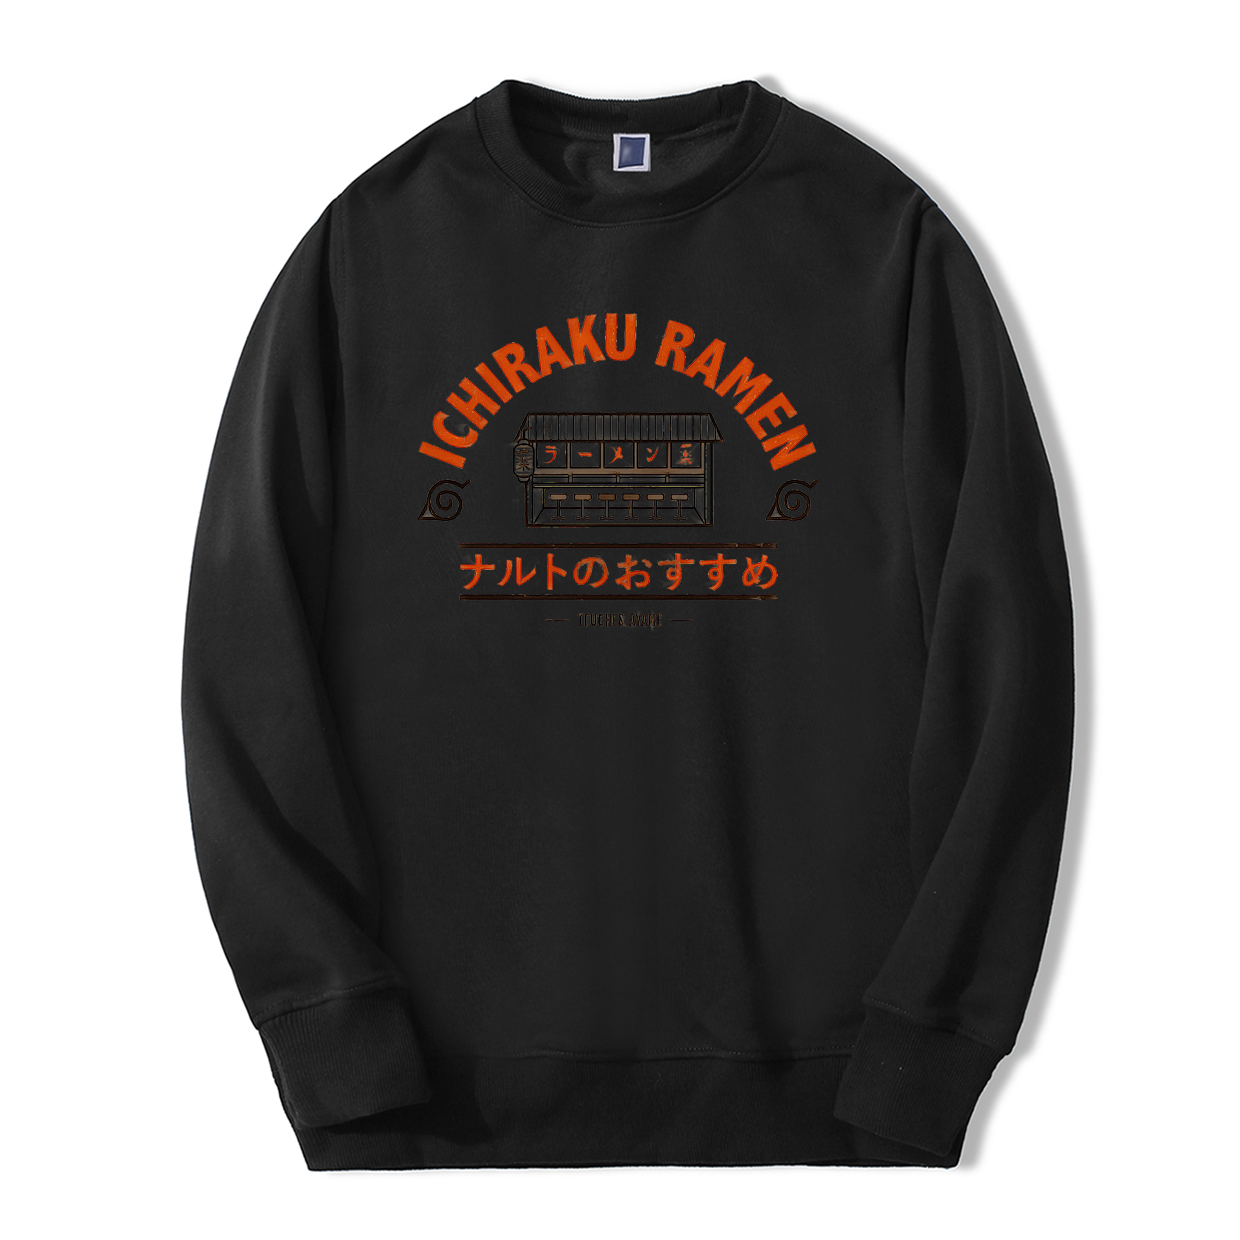 Sweatshirt Naruto Ichiraku Ramen Japan Anime 2019 Spring Winter Men Hoodie Streetwear Fleece Tracksuit Casual Fashion Sportswear